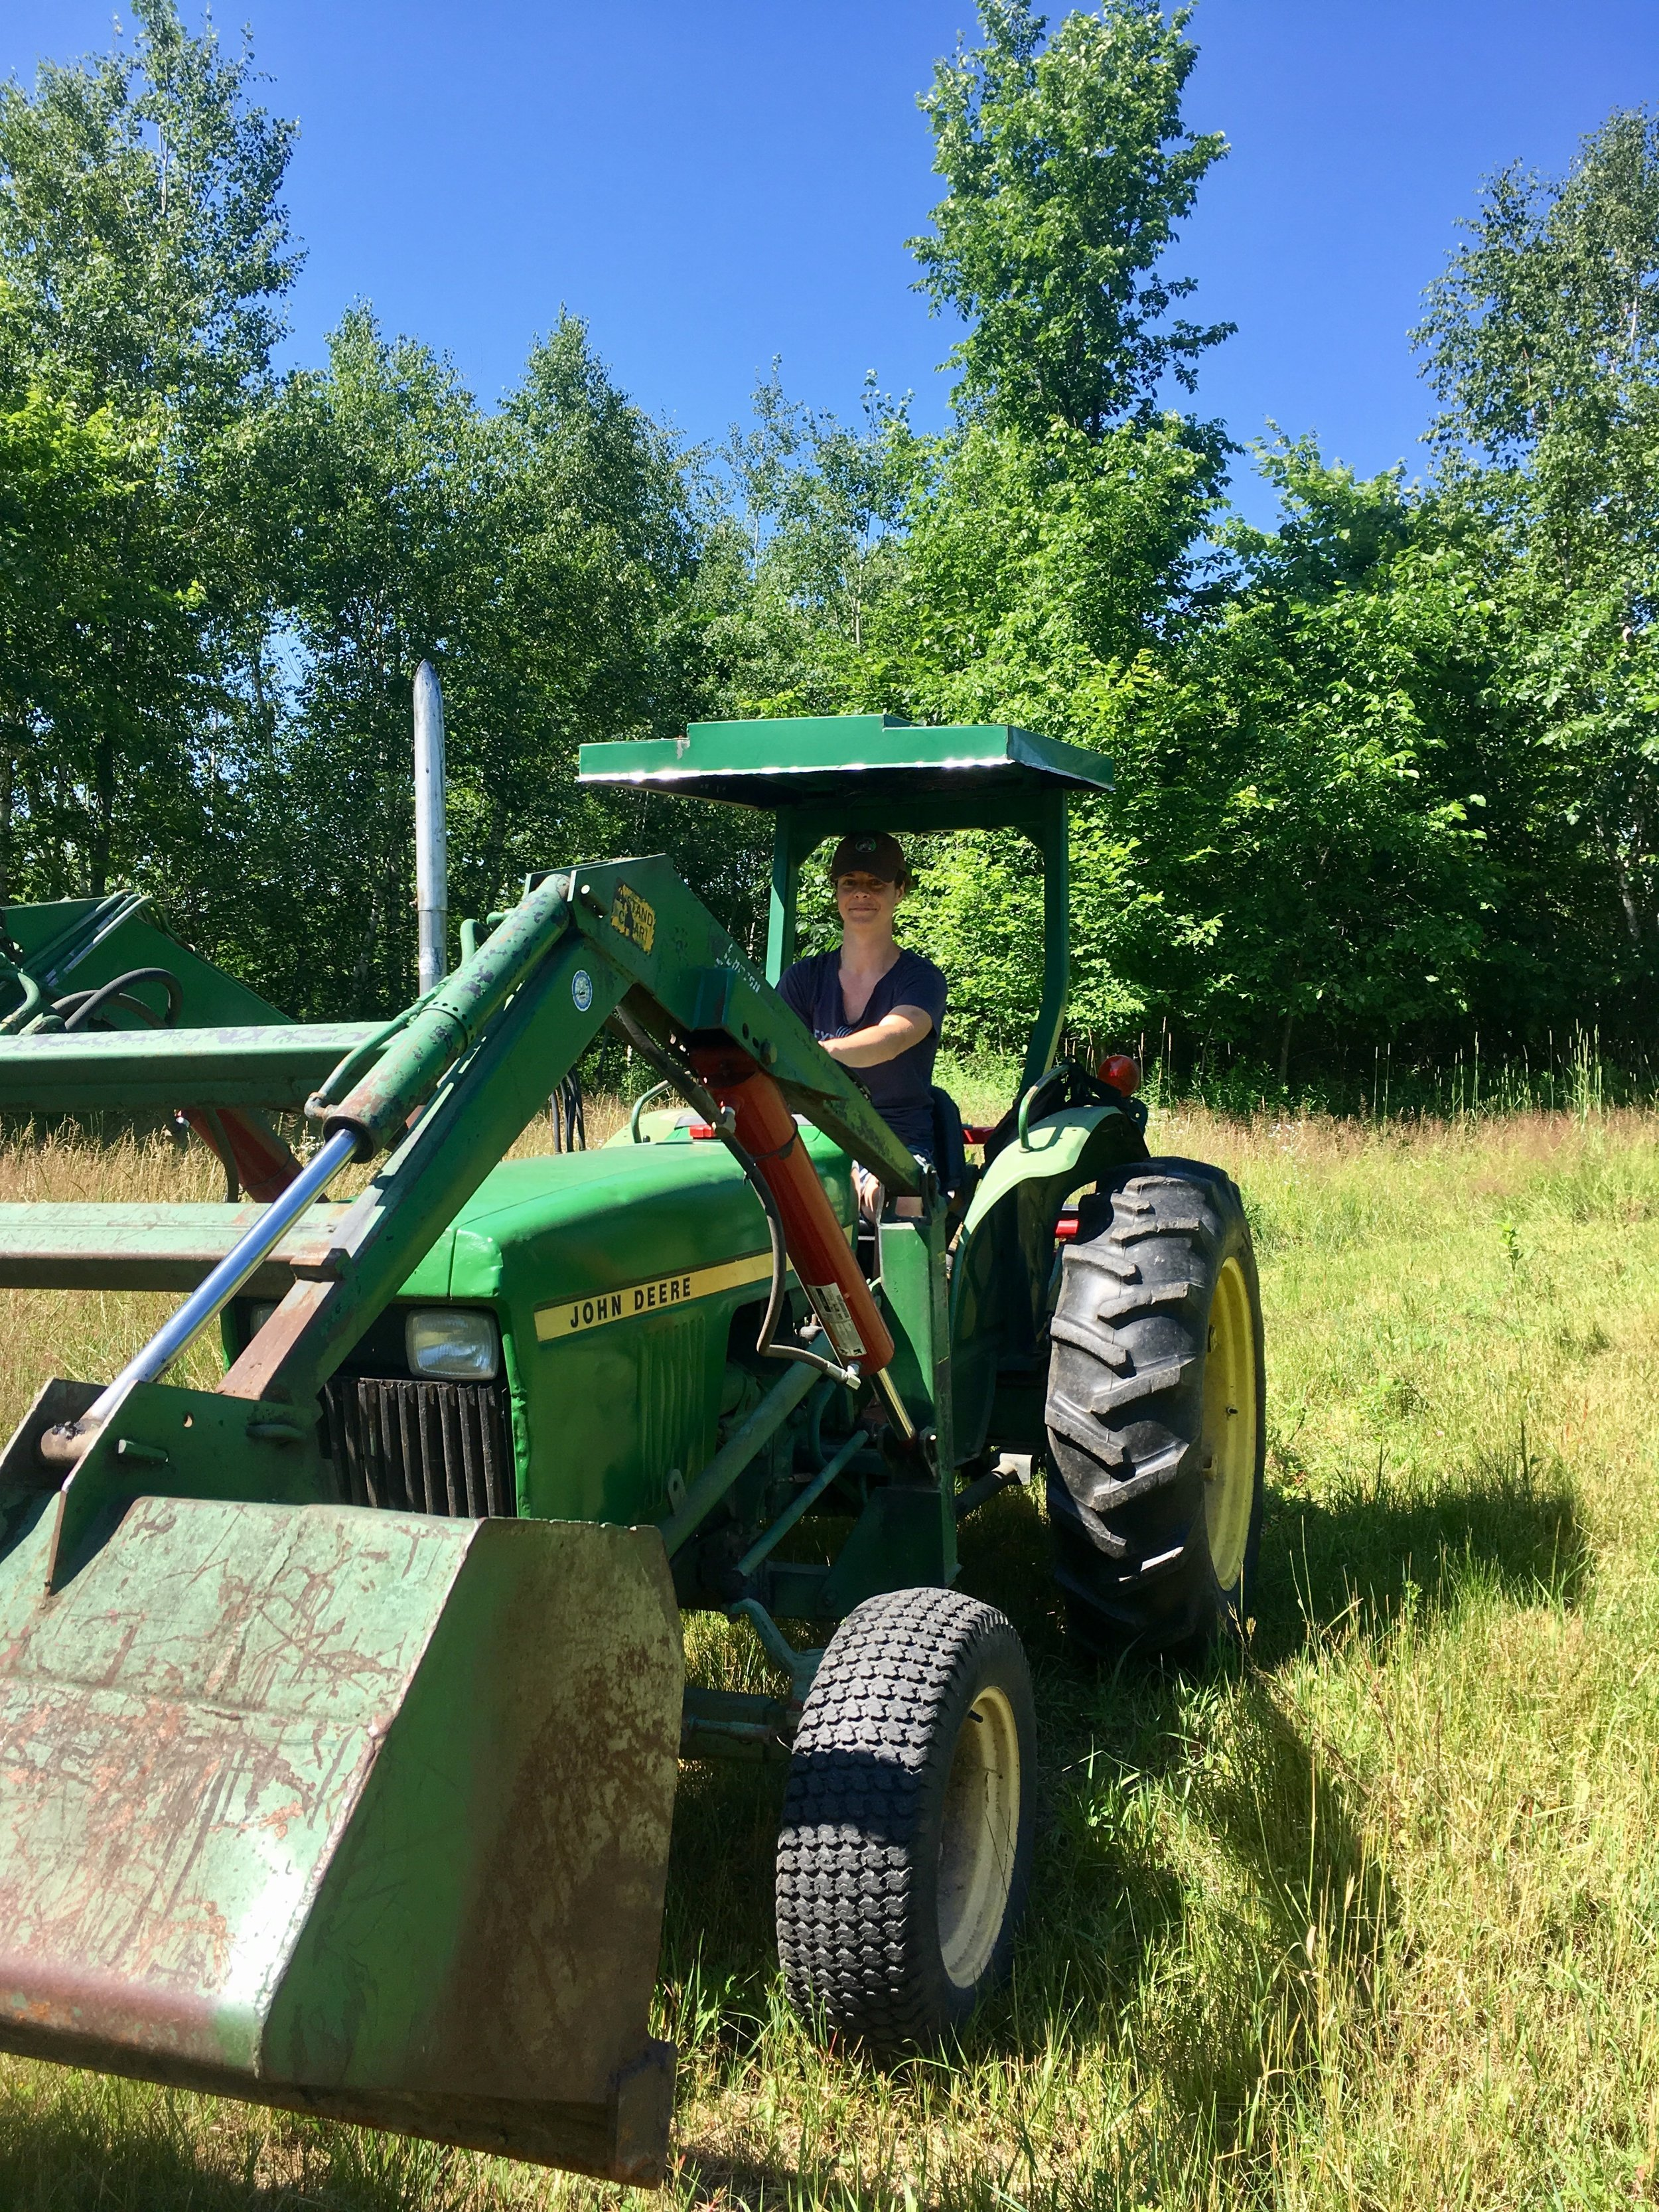 Jaclyn working on a tractor, Minnesota, 2017, image supplied.